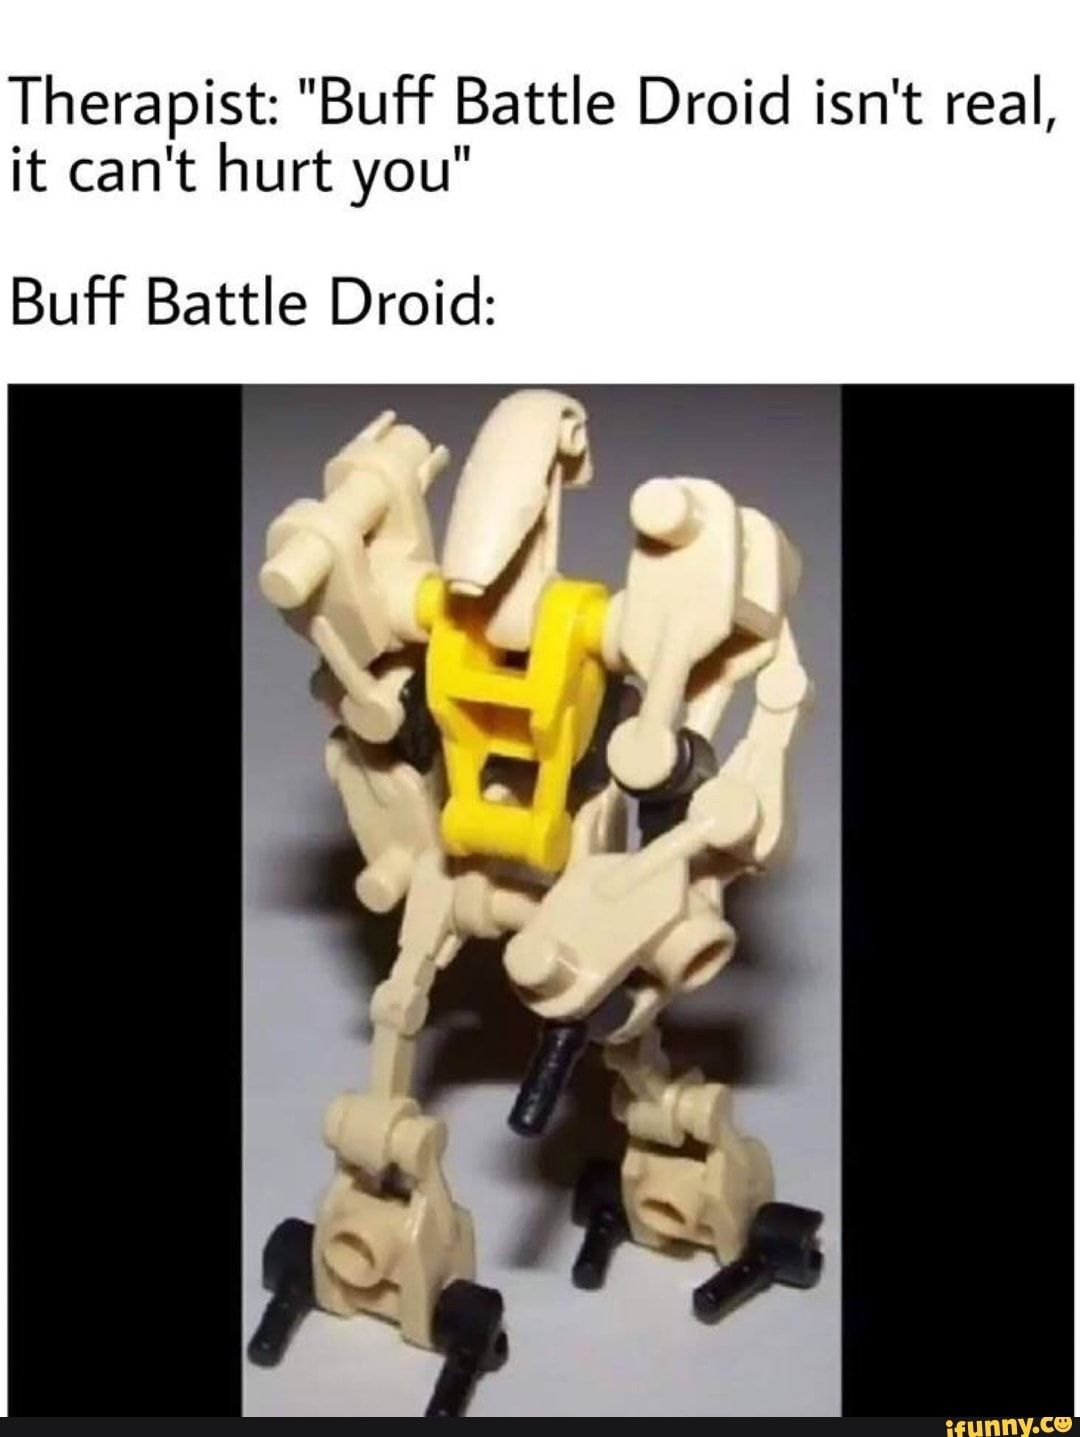 Therapist Buff Battle Droid Isn T Real It Can T Hurt You Buf F Battle Droid Ifunny Funny Star Wars Memes Lego Memes Star Wars Humor